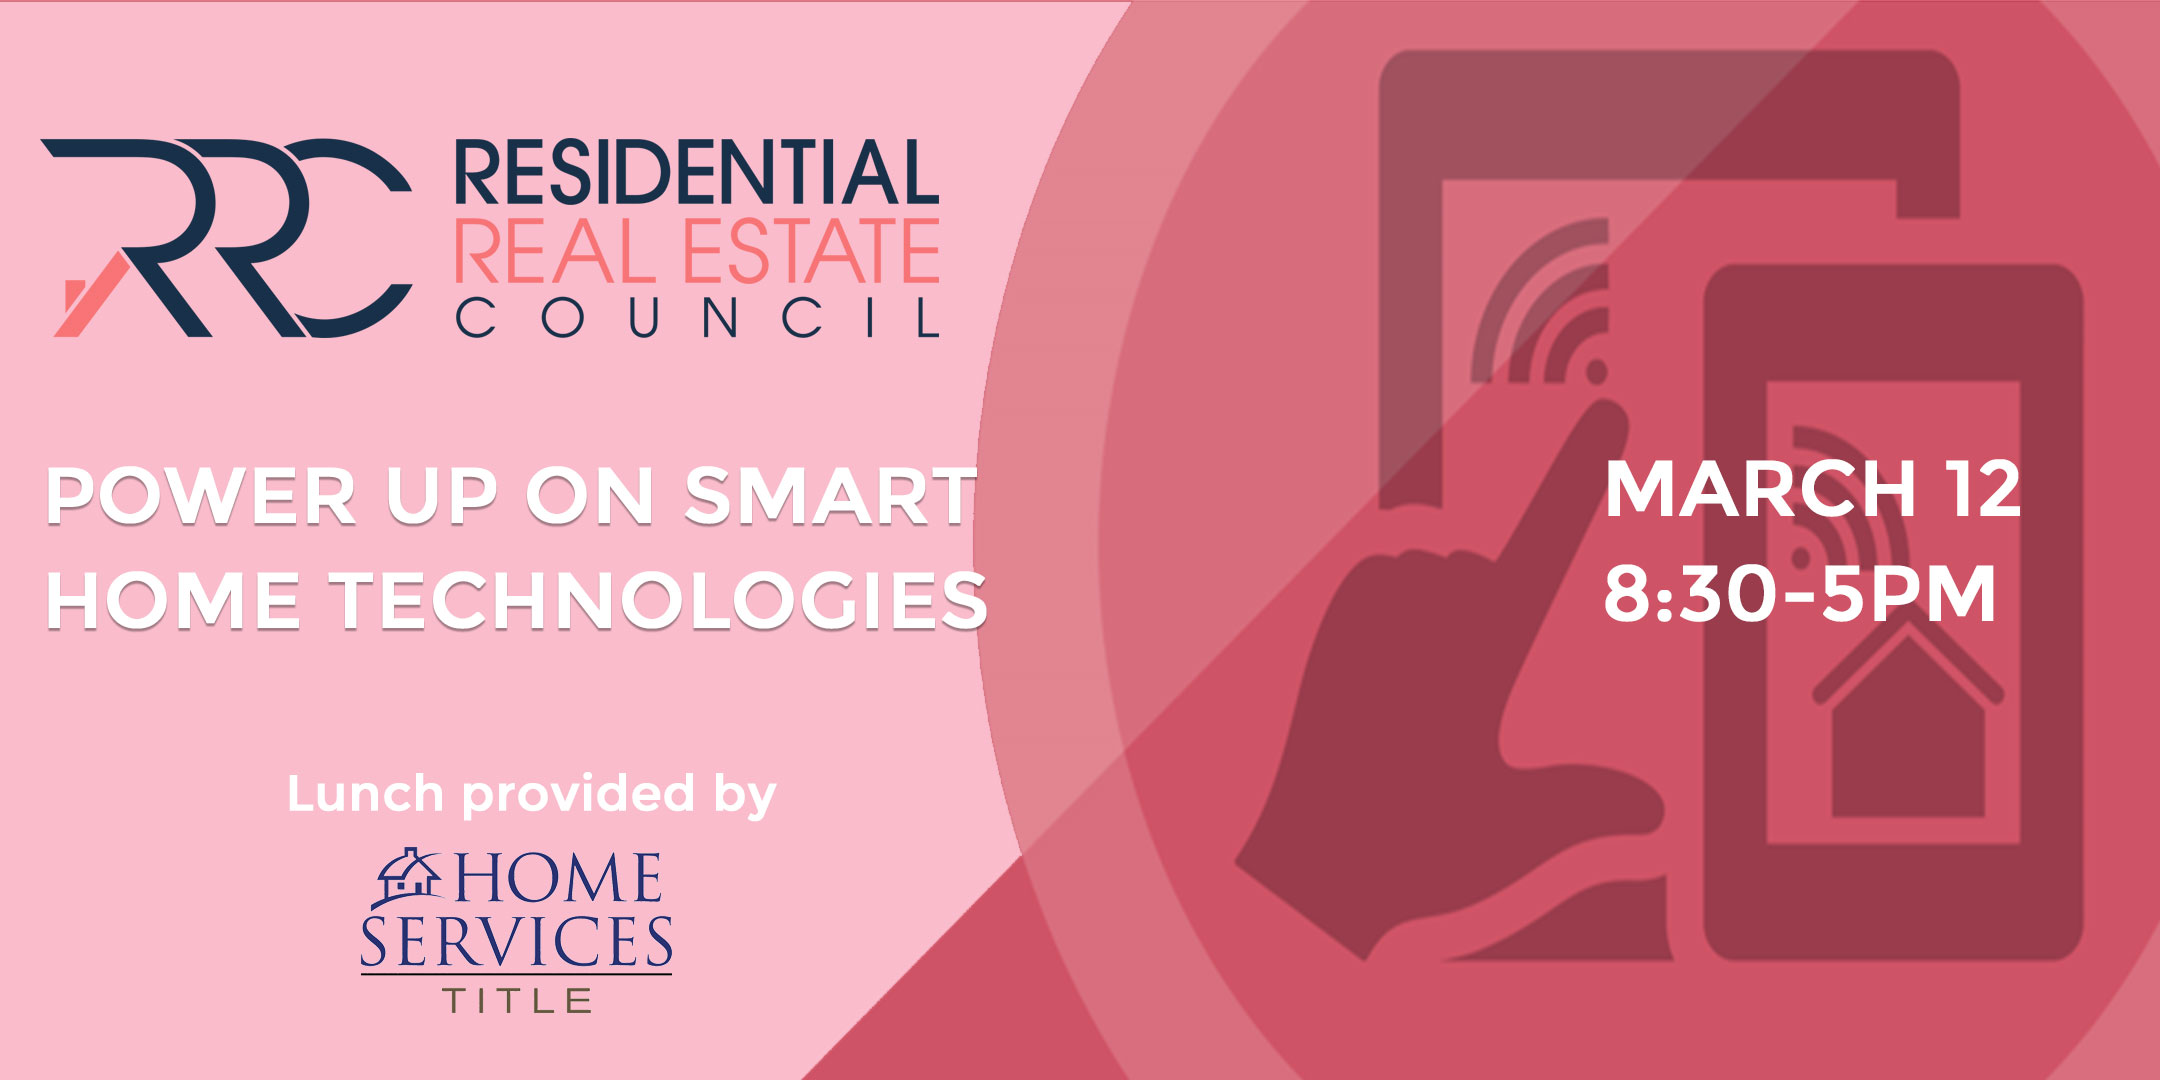 Power Up on Smart Home Technologies, March 12